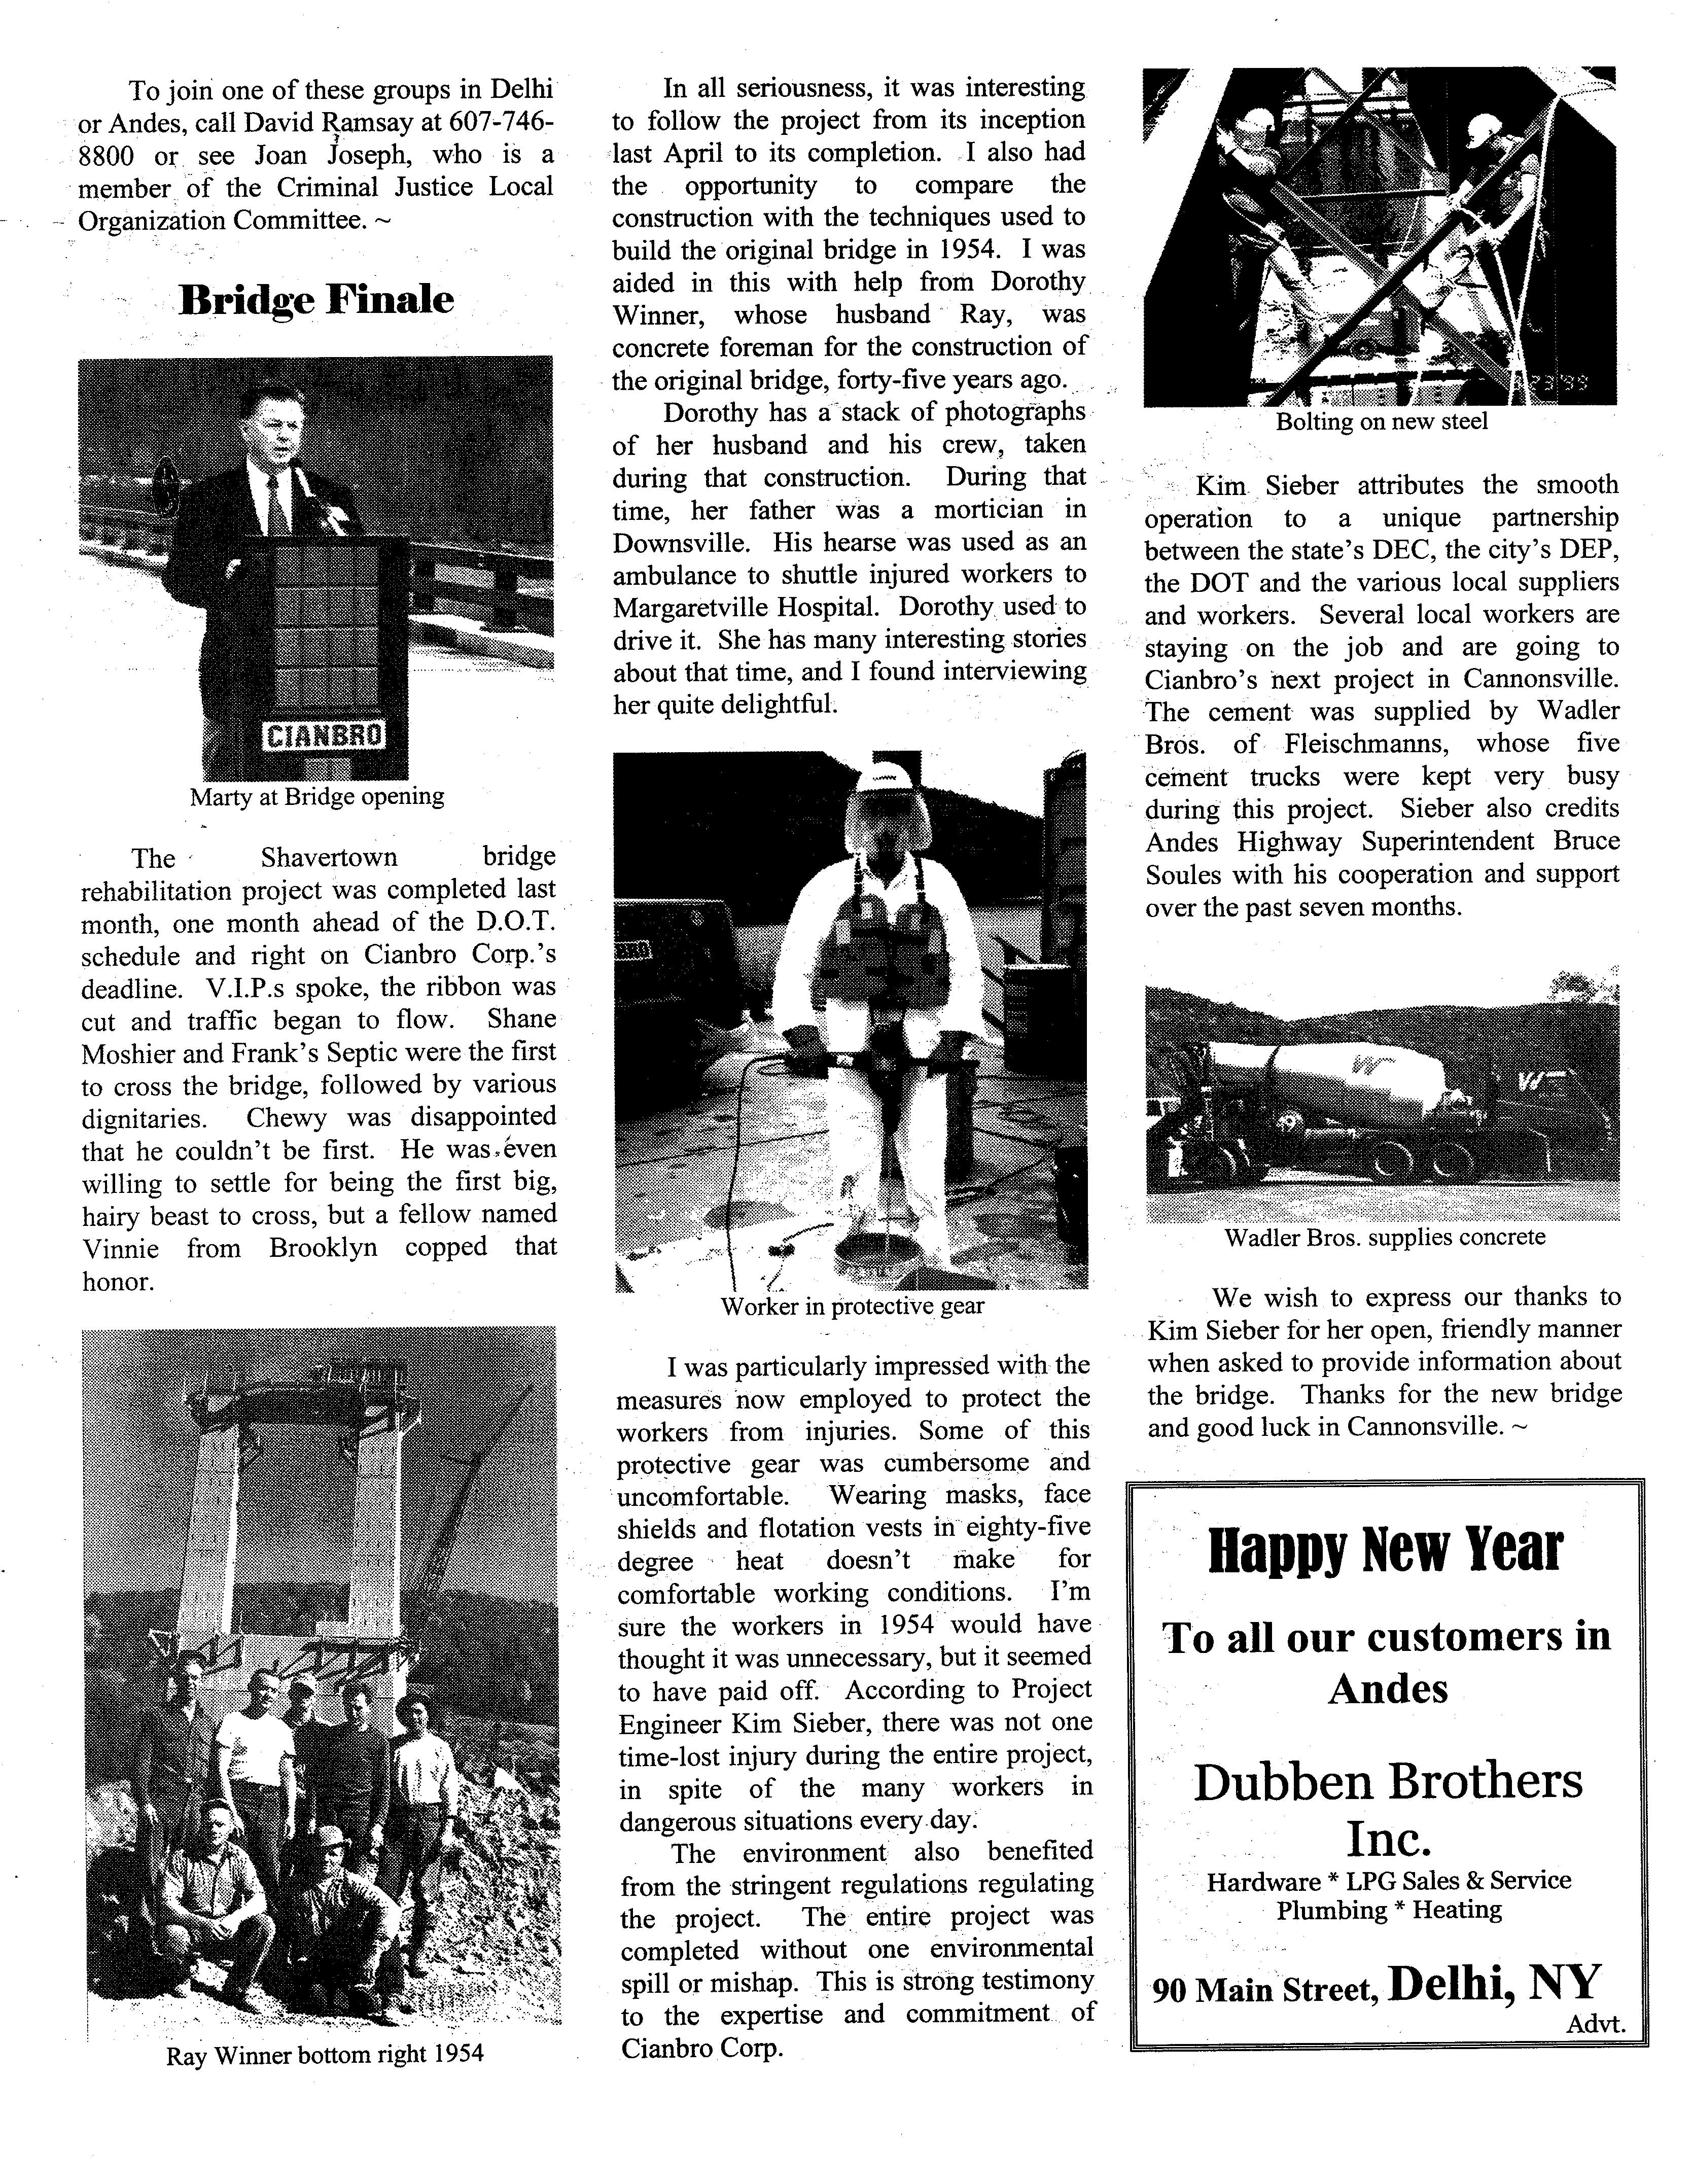 ANDES GAZETTE - January 2000 - Page 4